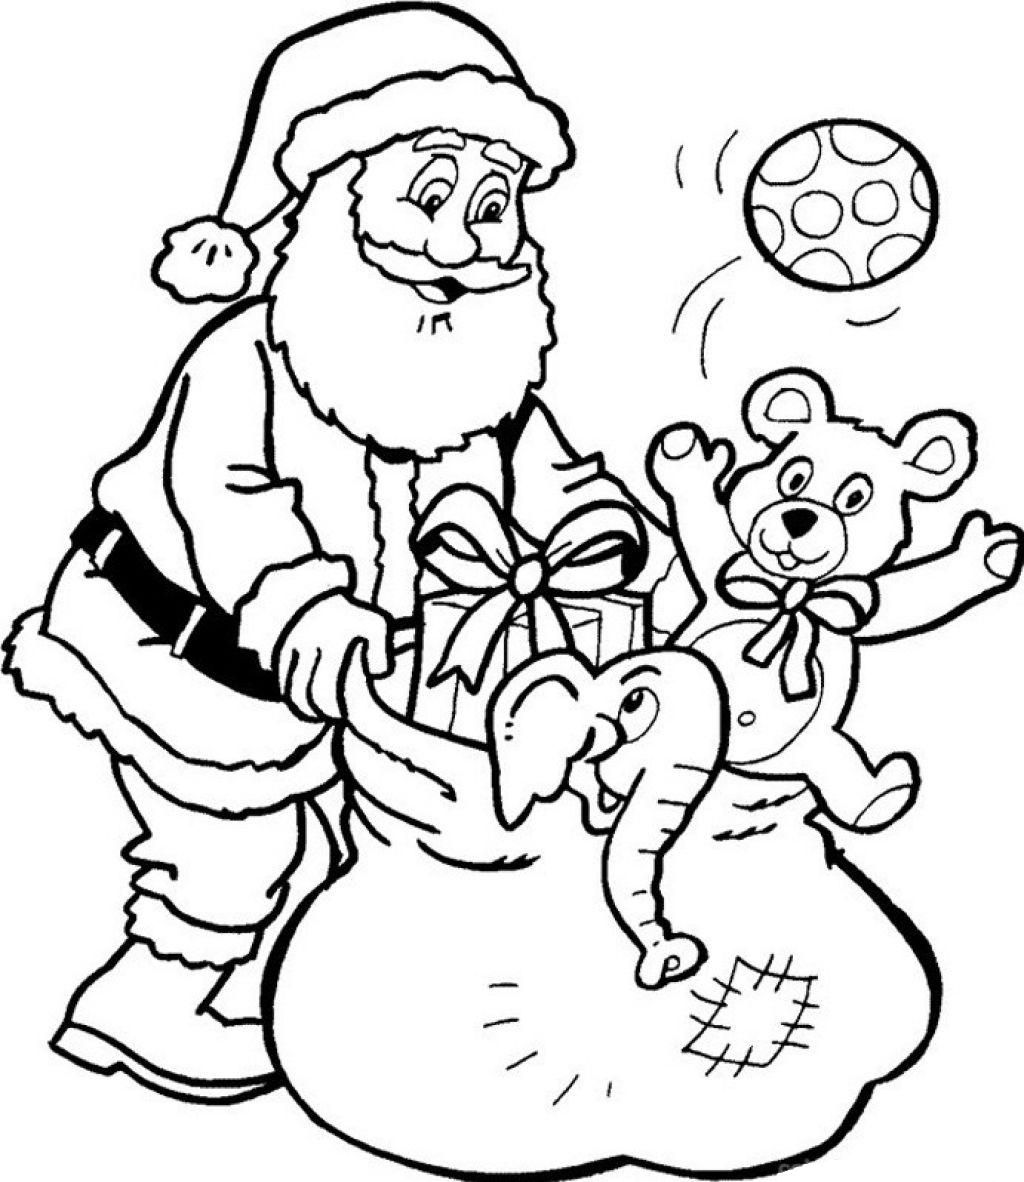 Santa Claus And Elves Coloring Pages With Presents Printable Christmas Some